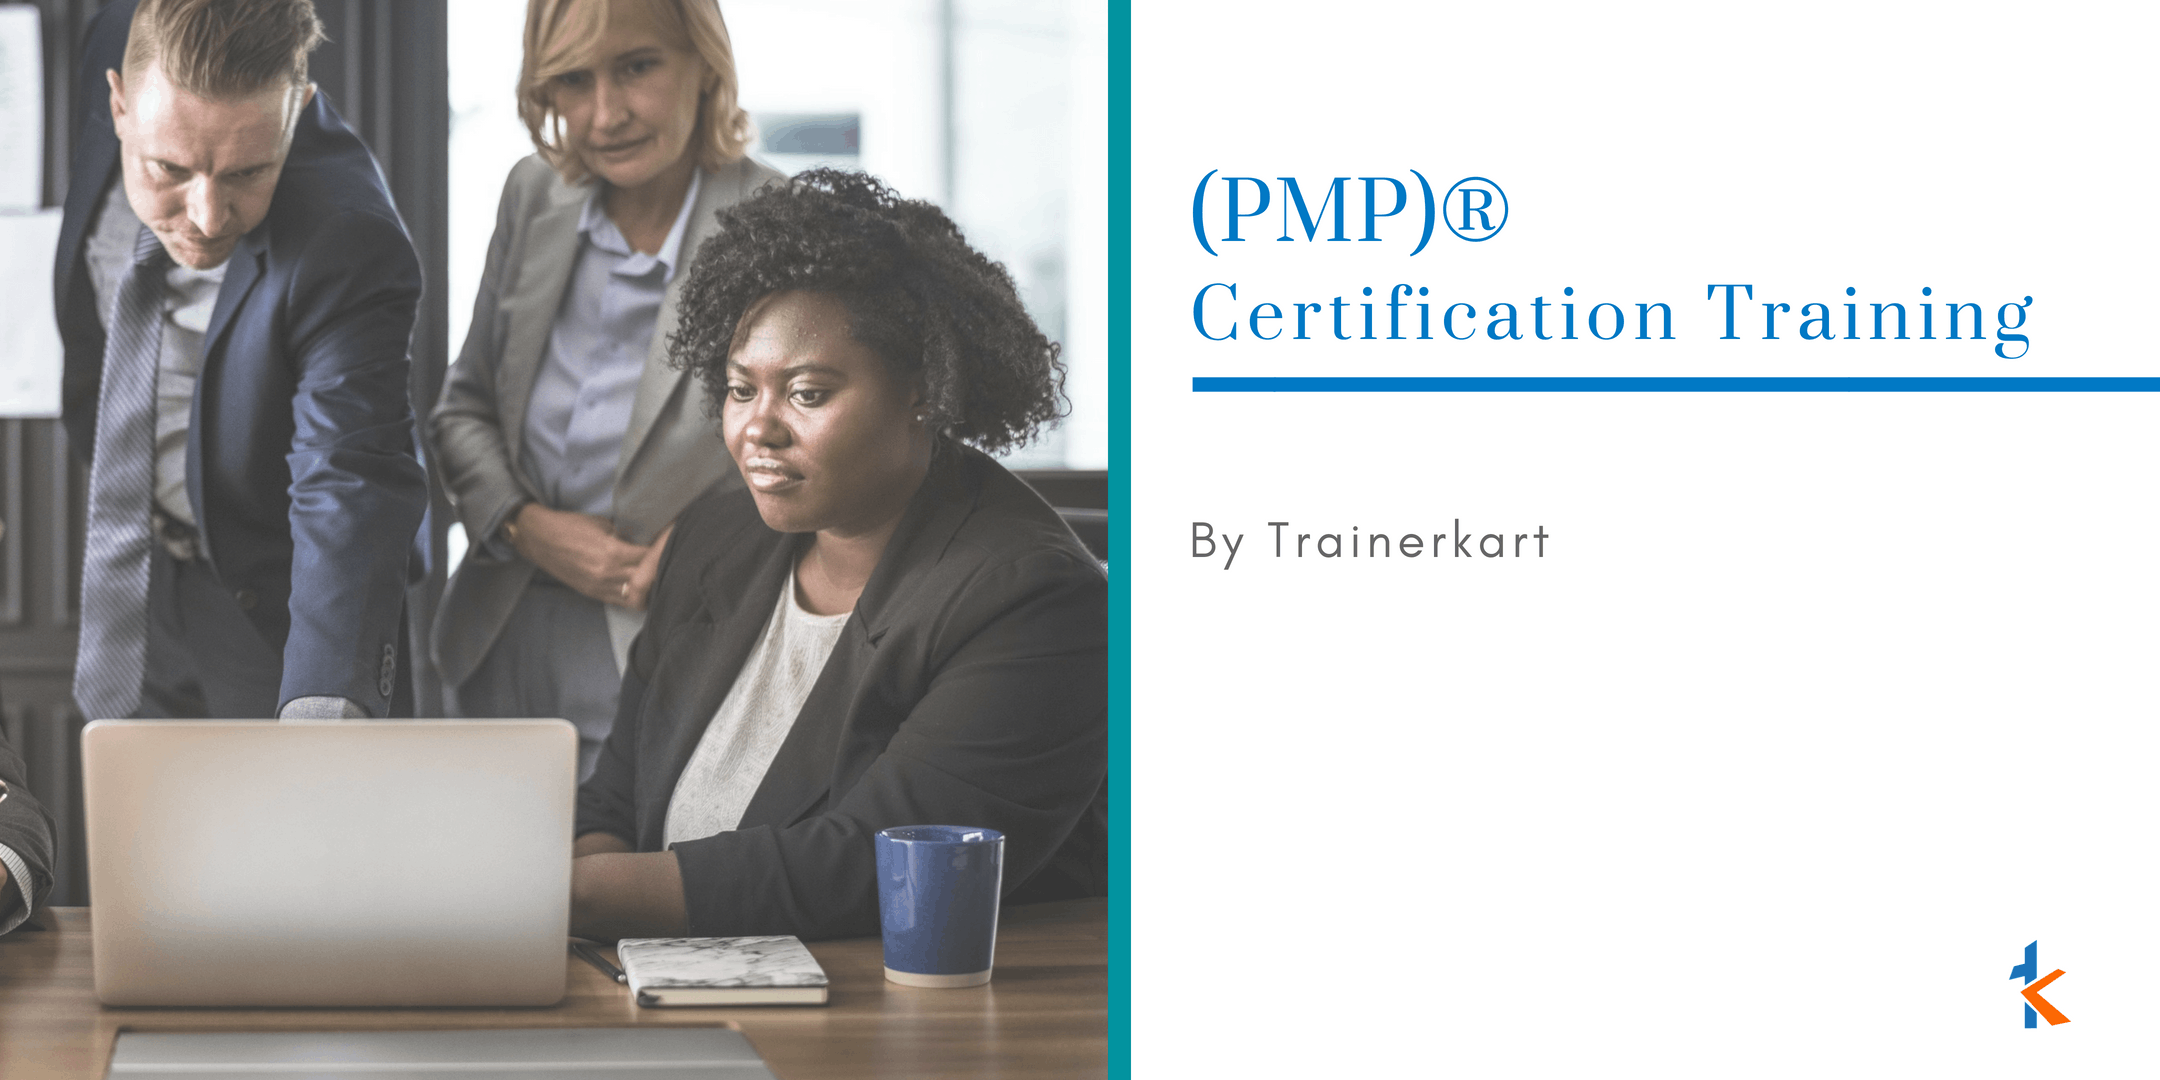 Pmp Training In Minneapolis St Paul Mn At Regus Business Centre